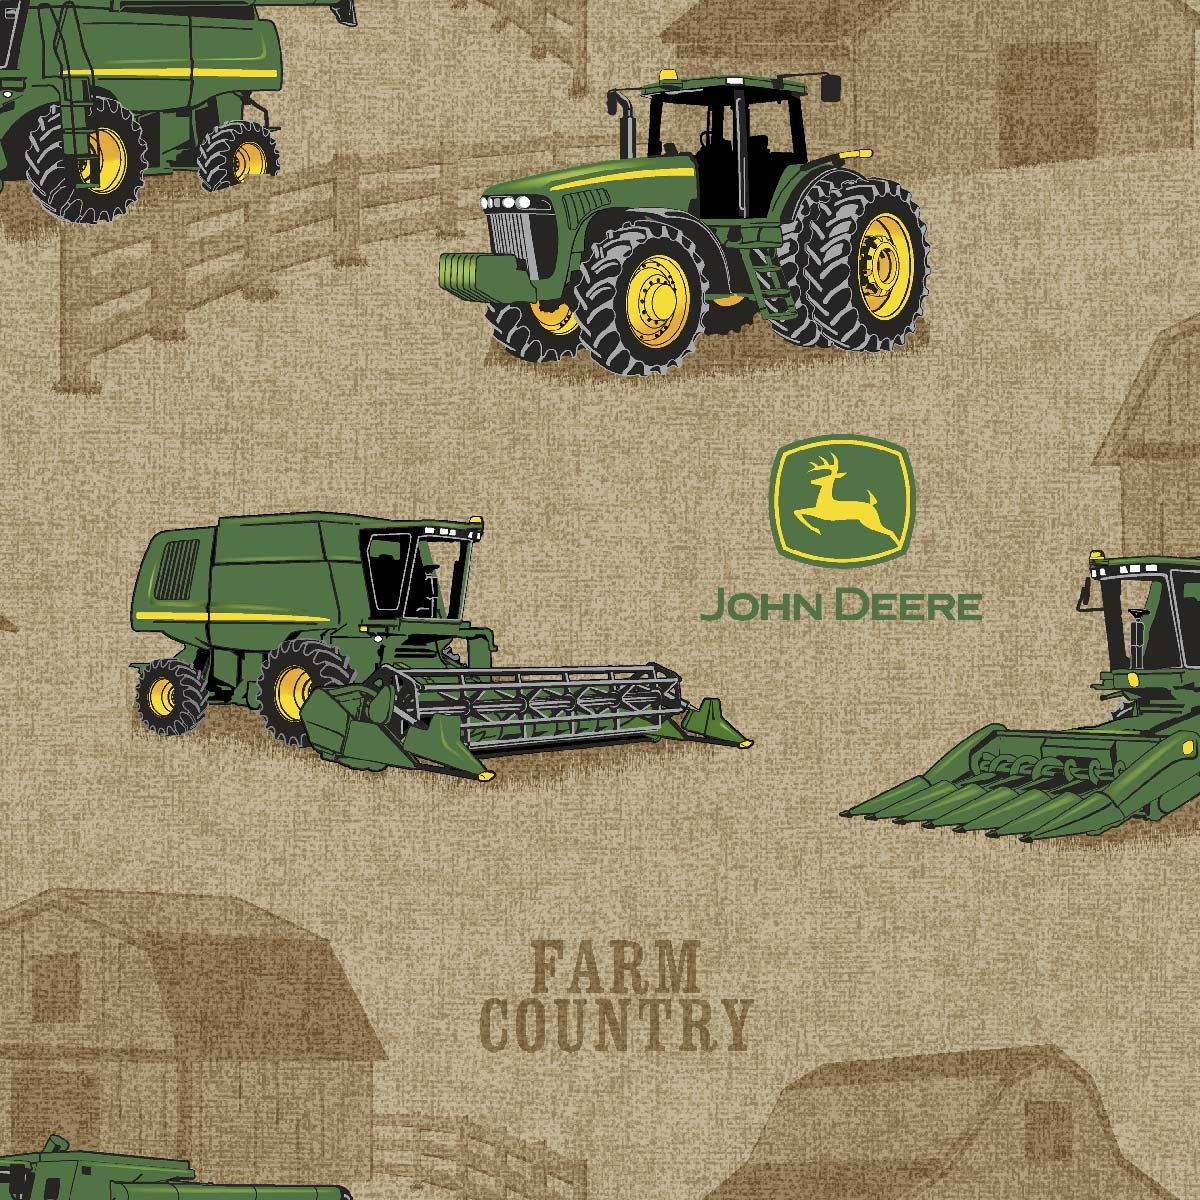 Amazon.com: Springs Creative Products Group John Deere Tractor ...